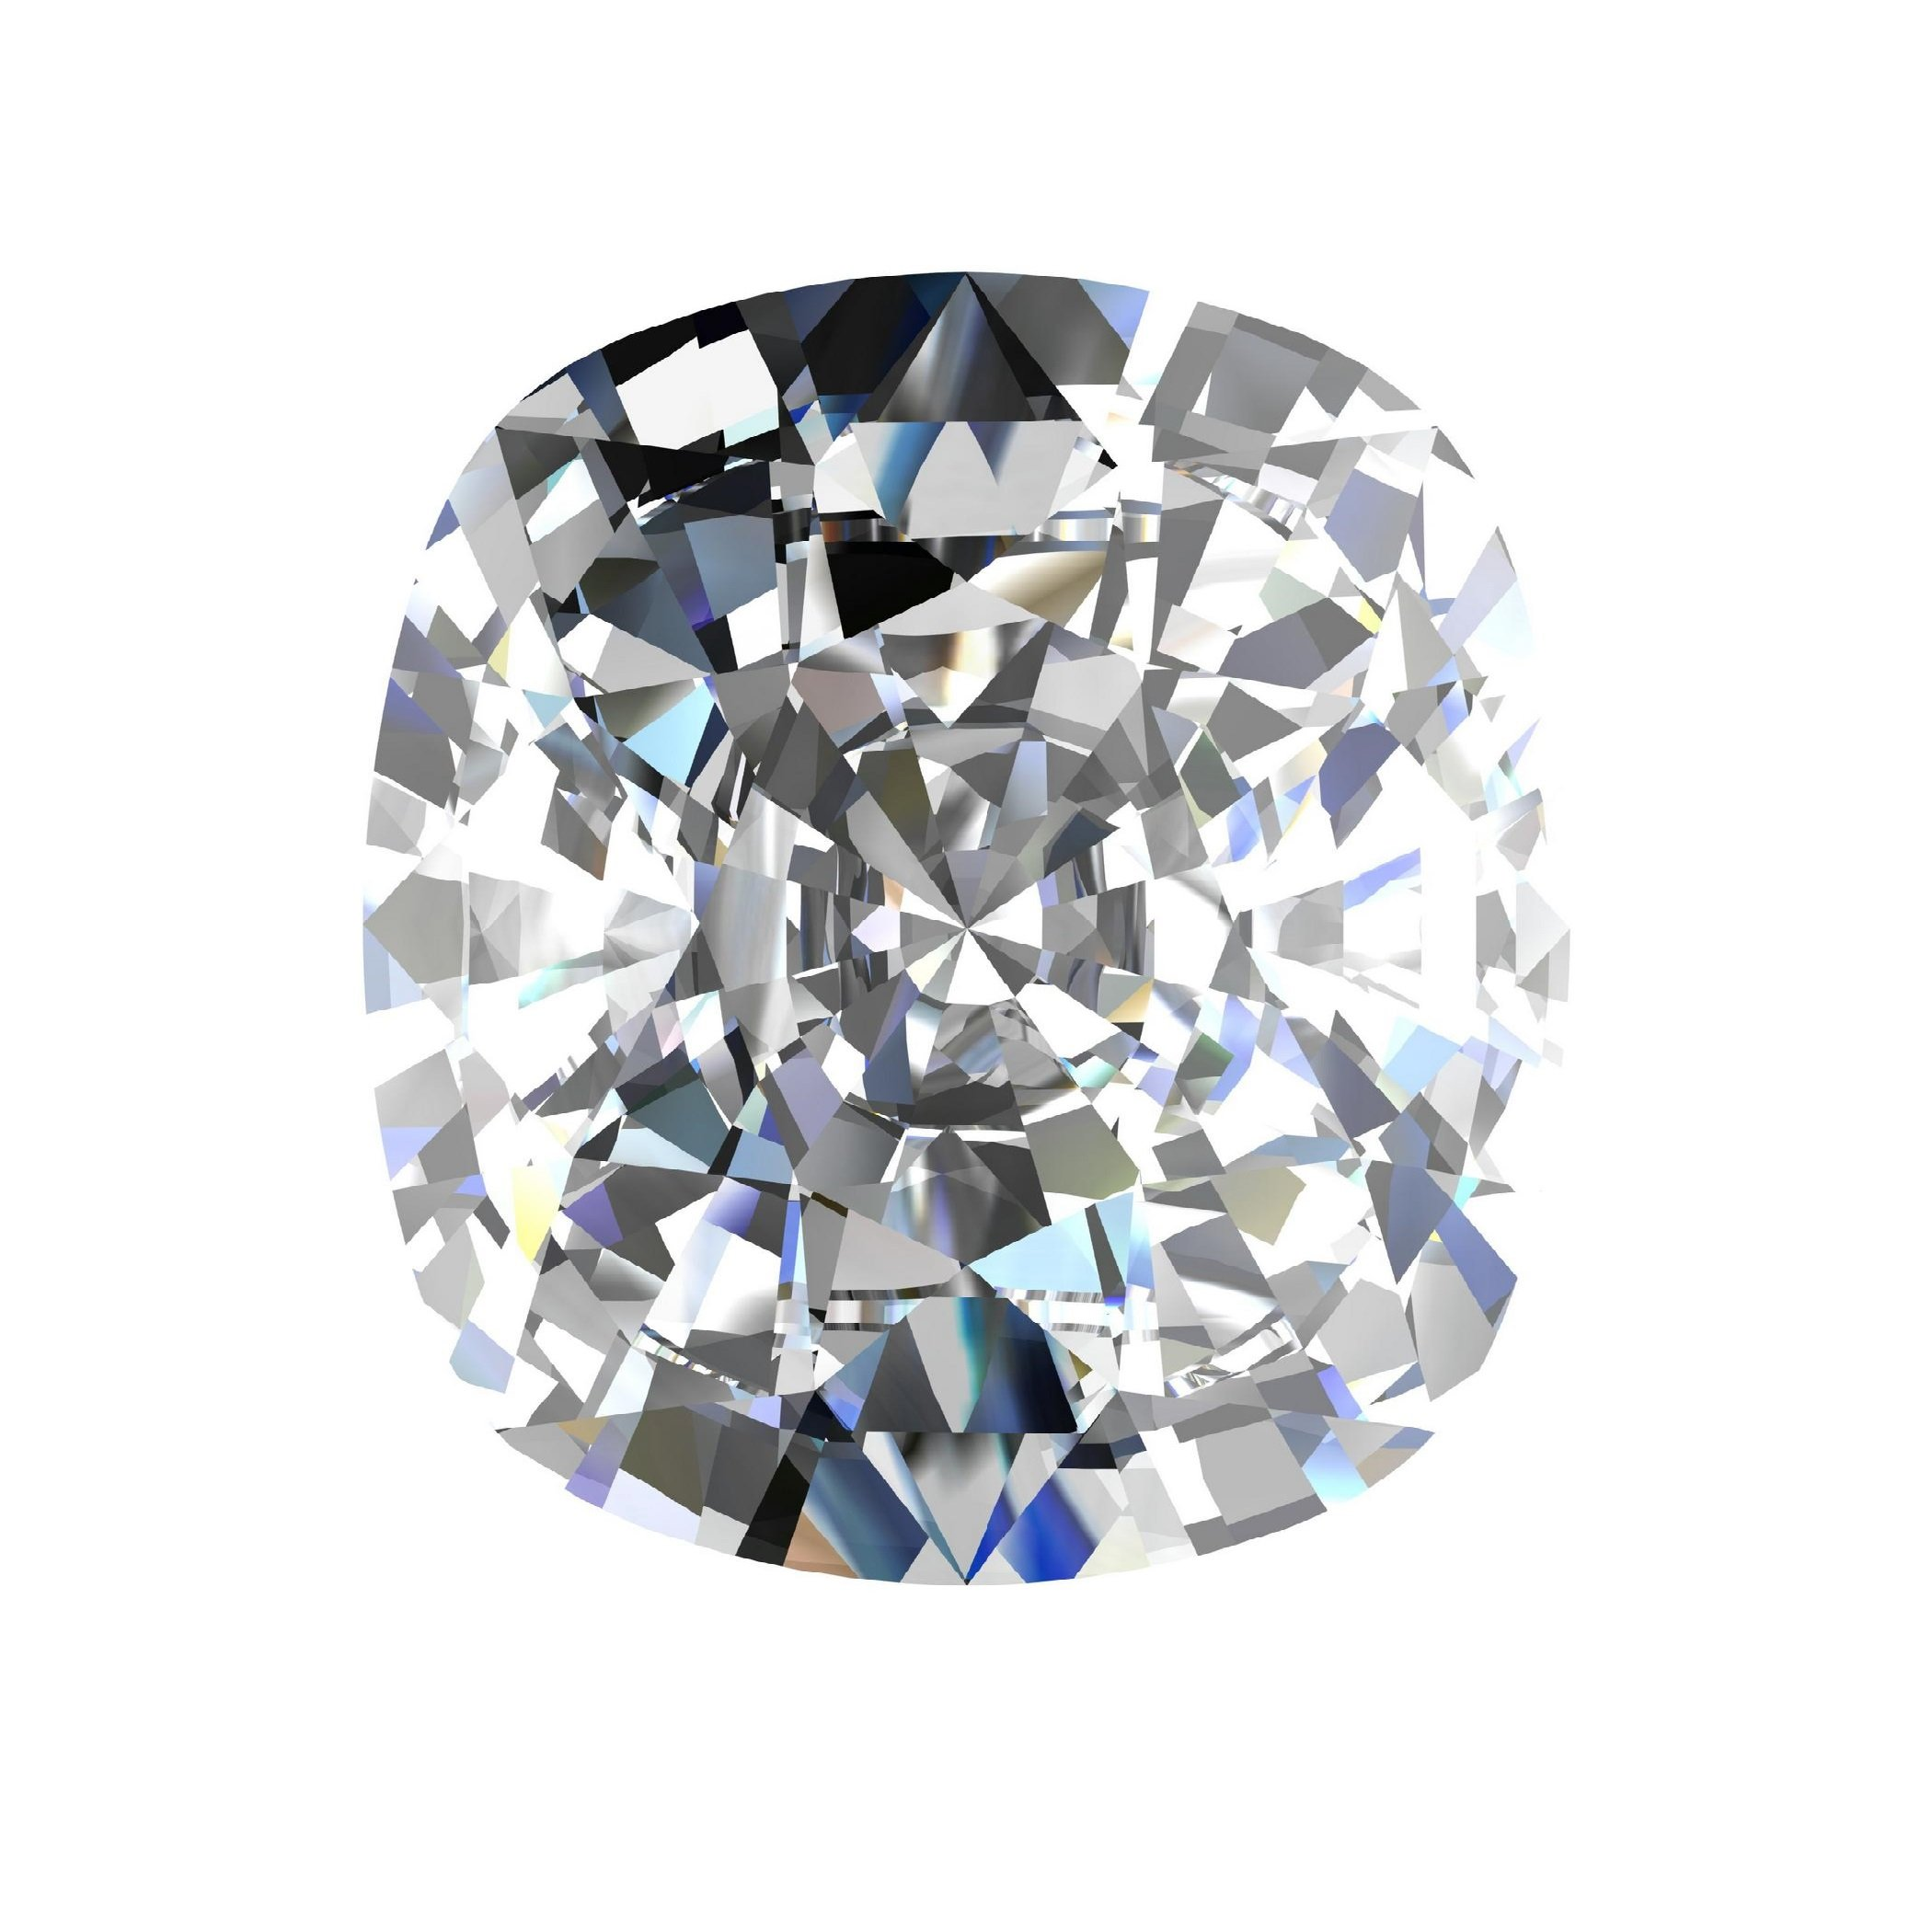 GIA Certified Natural 1.02 Carat Cushion Diamond with F Color & SI1 Clarity